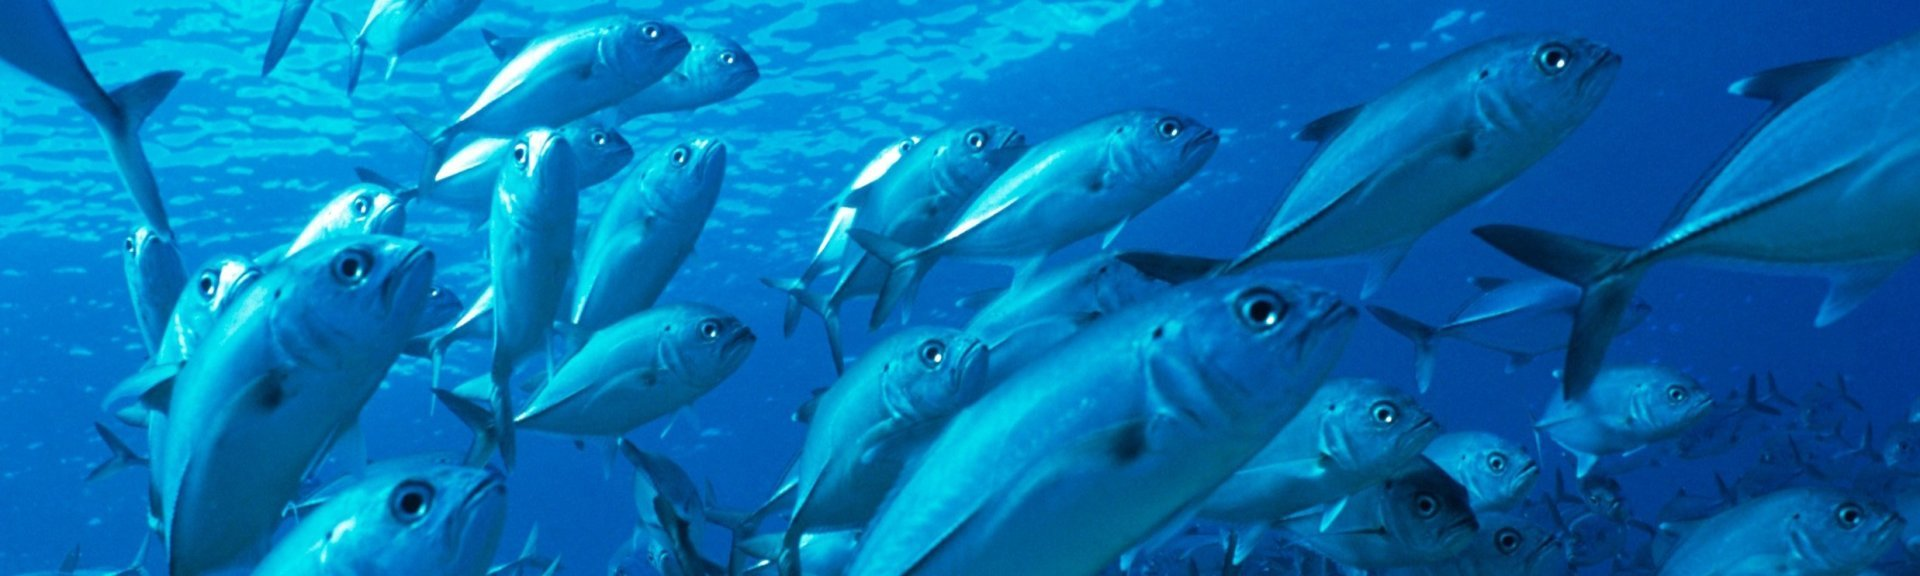 Schooling bigeye trevally in the Coral Sea.